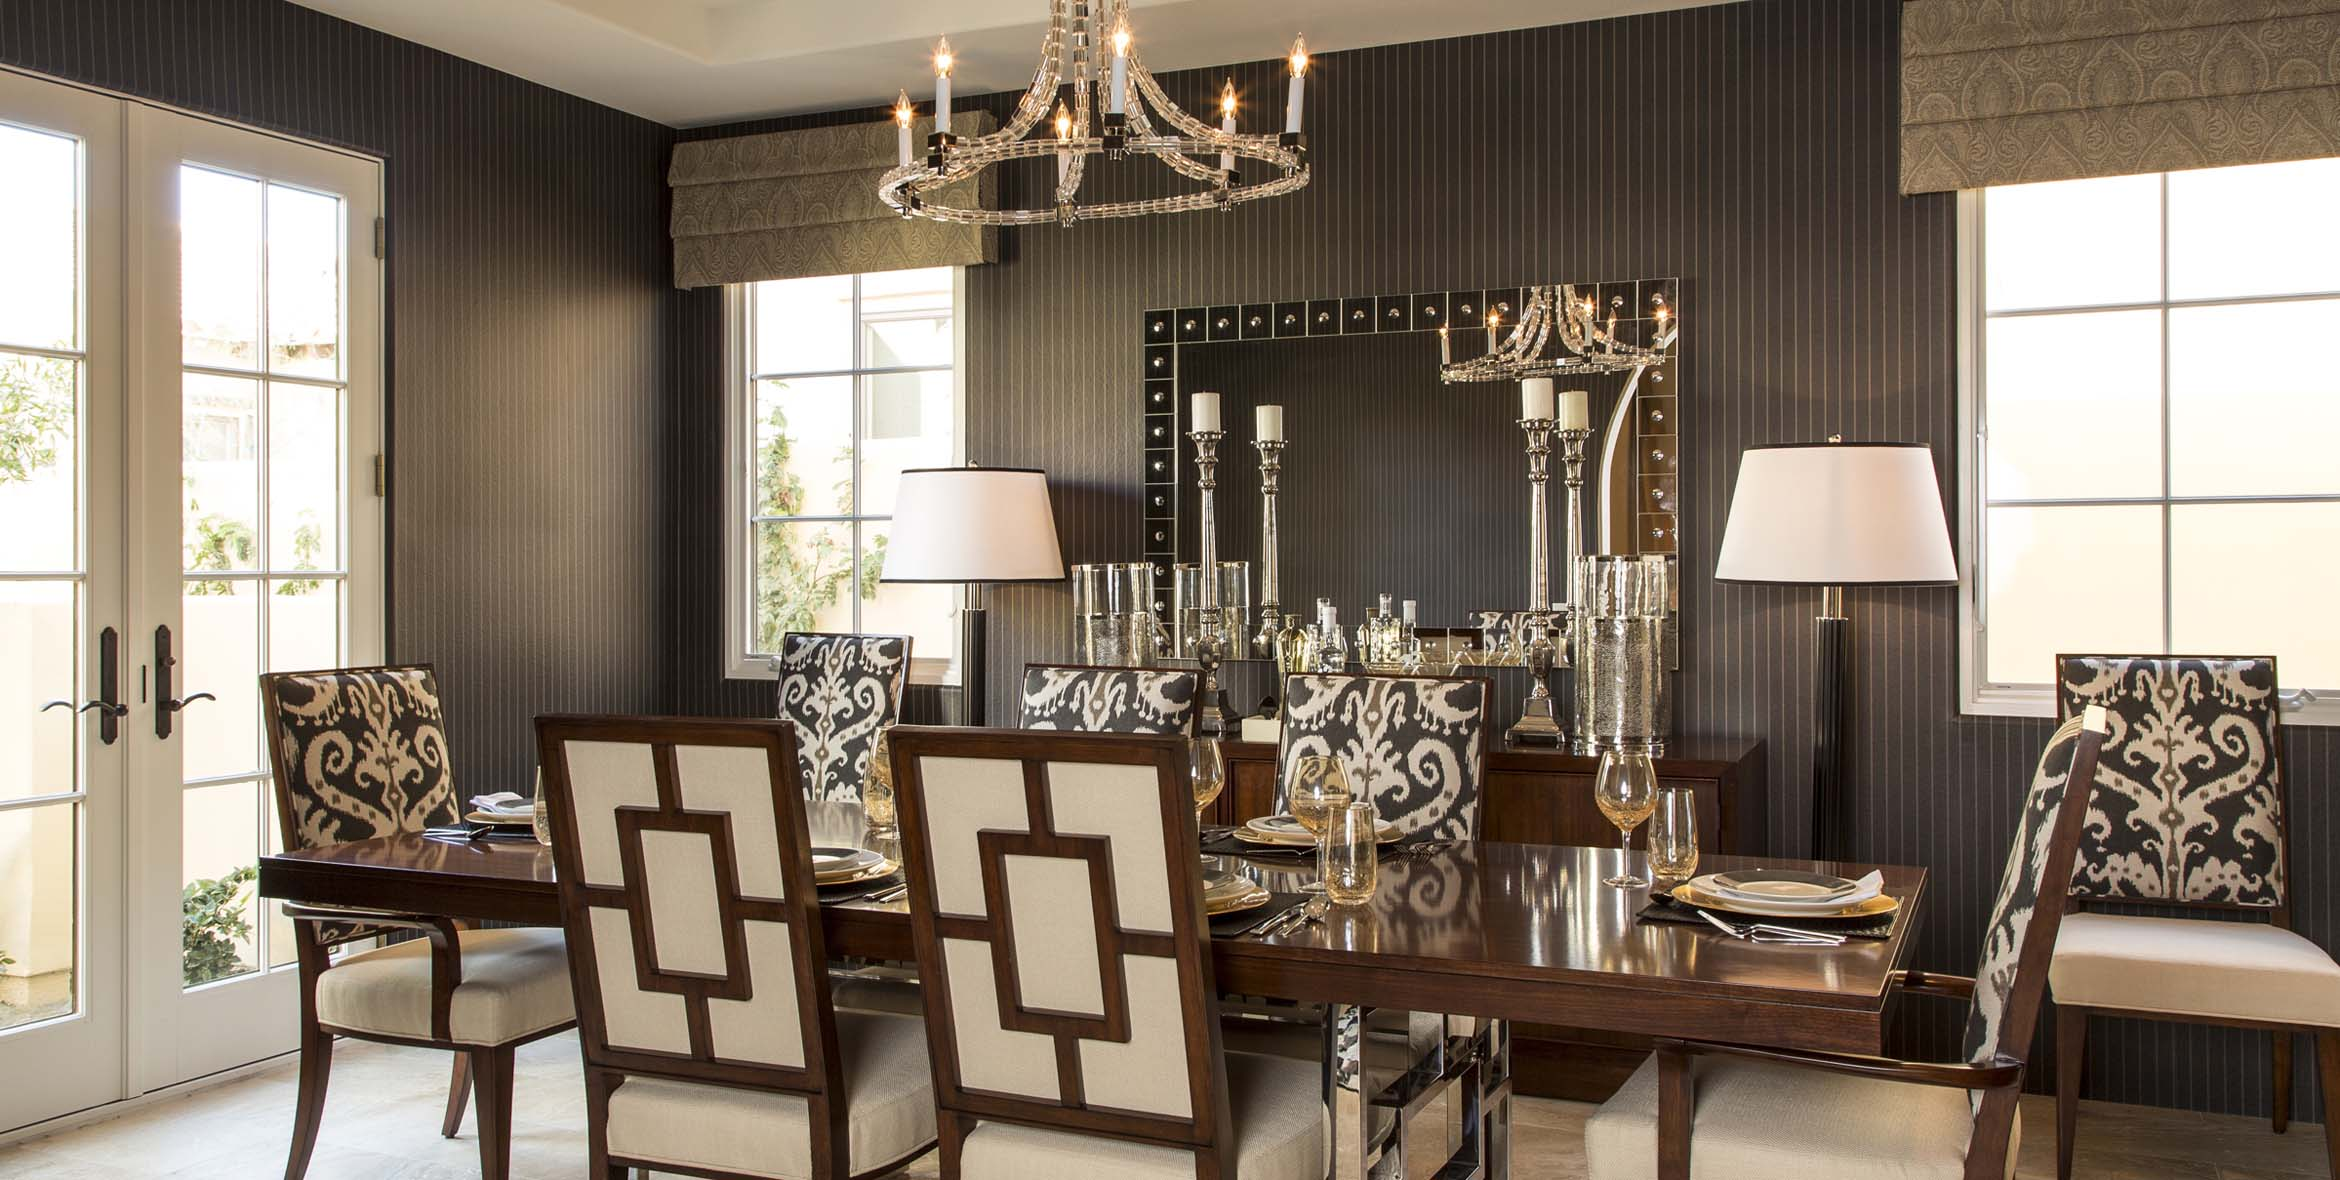 Astonishing barclay butera with unique pattern interior for living room combined with barclay butera furniture ideas